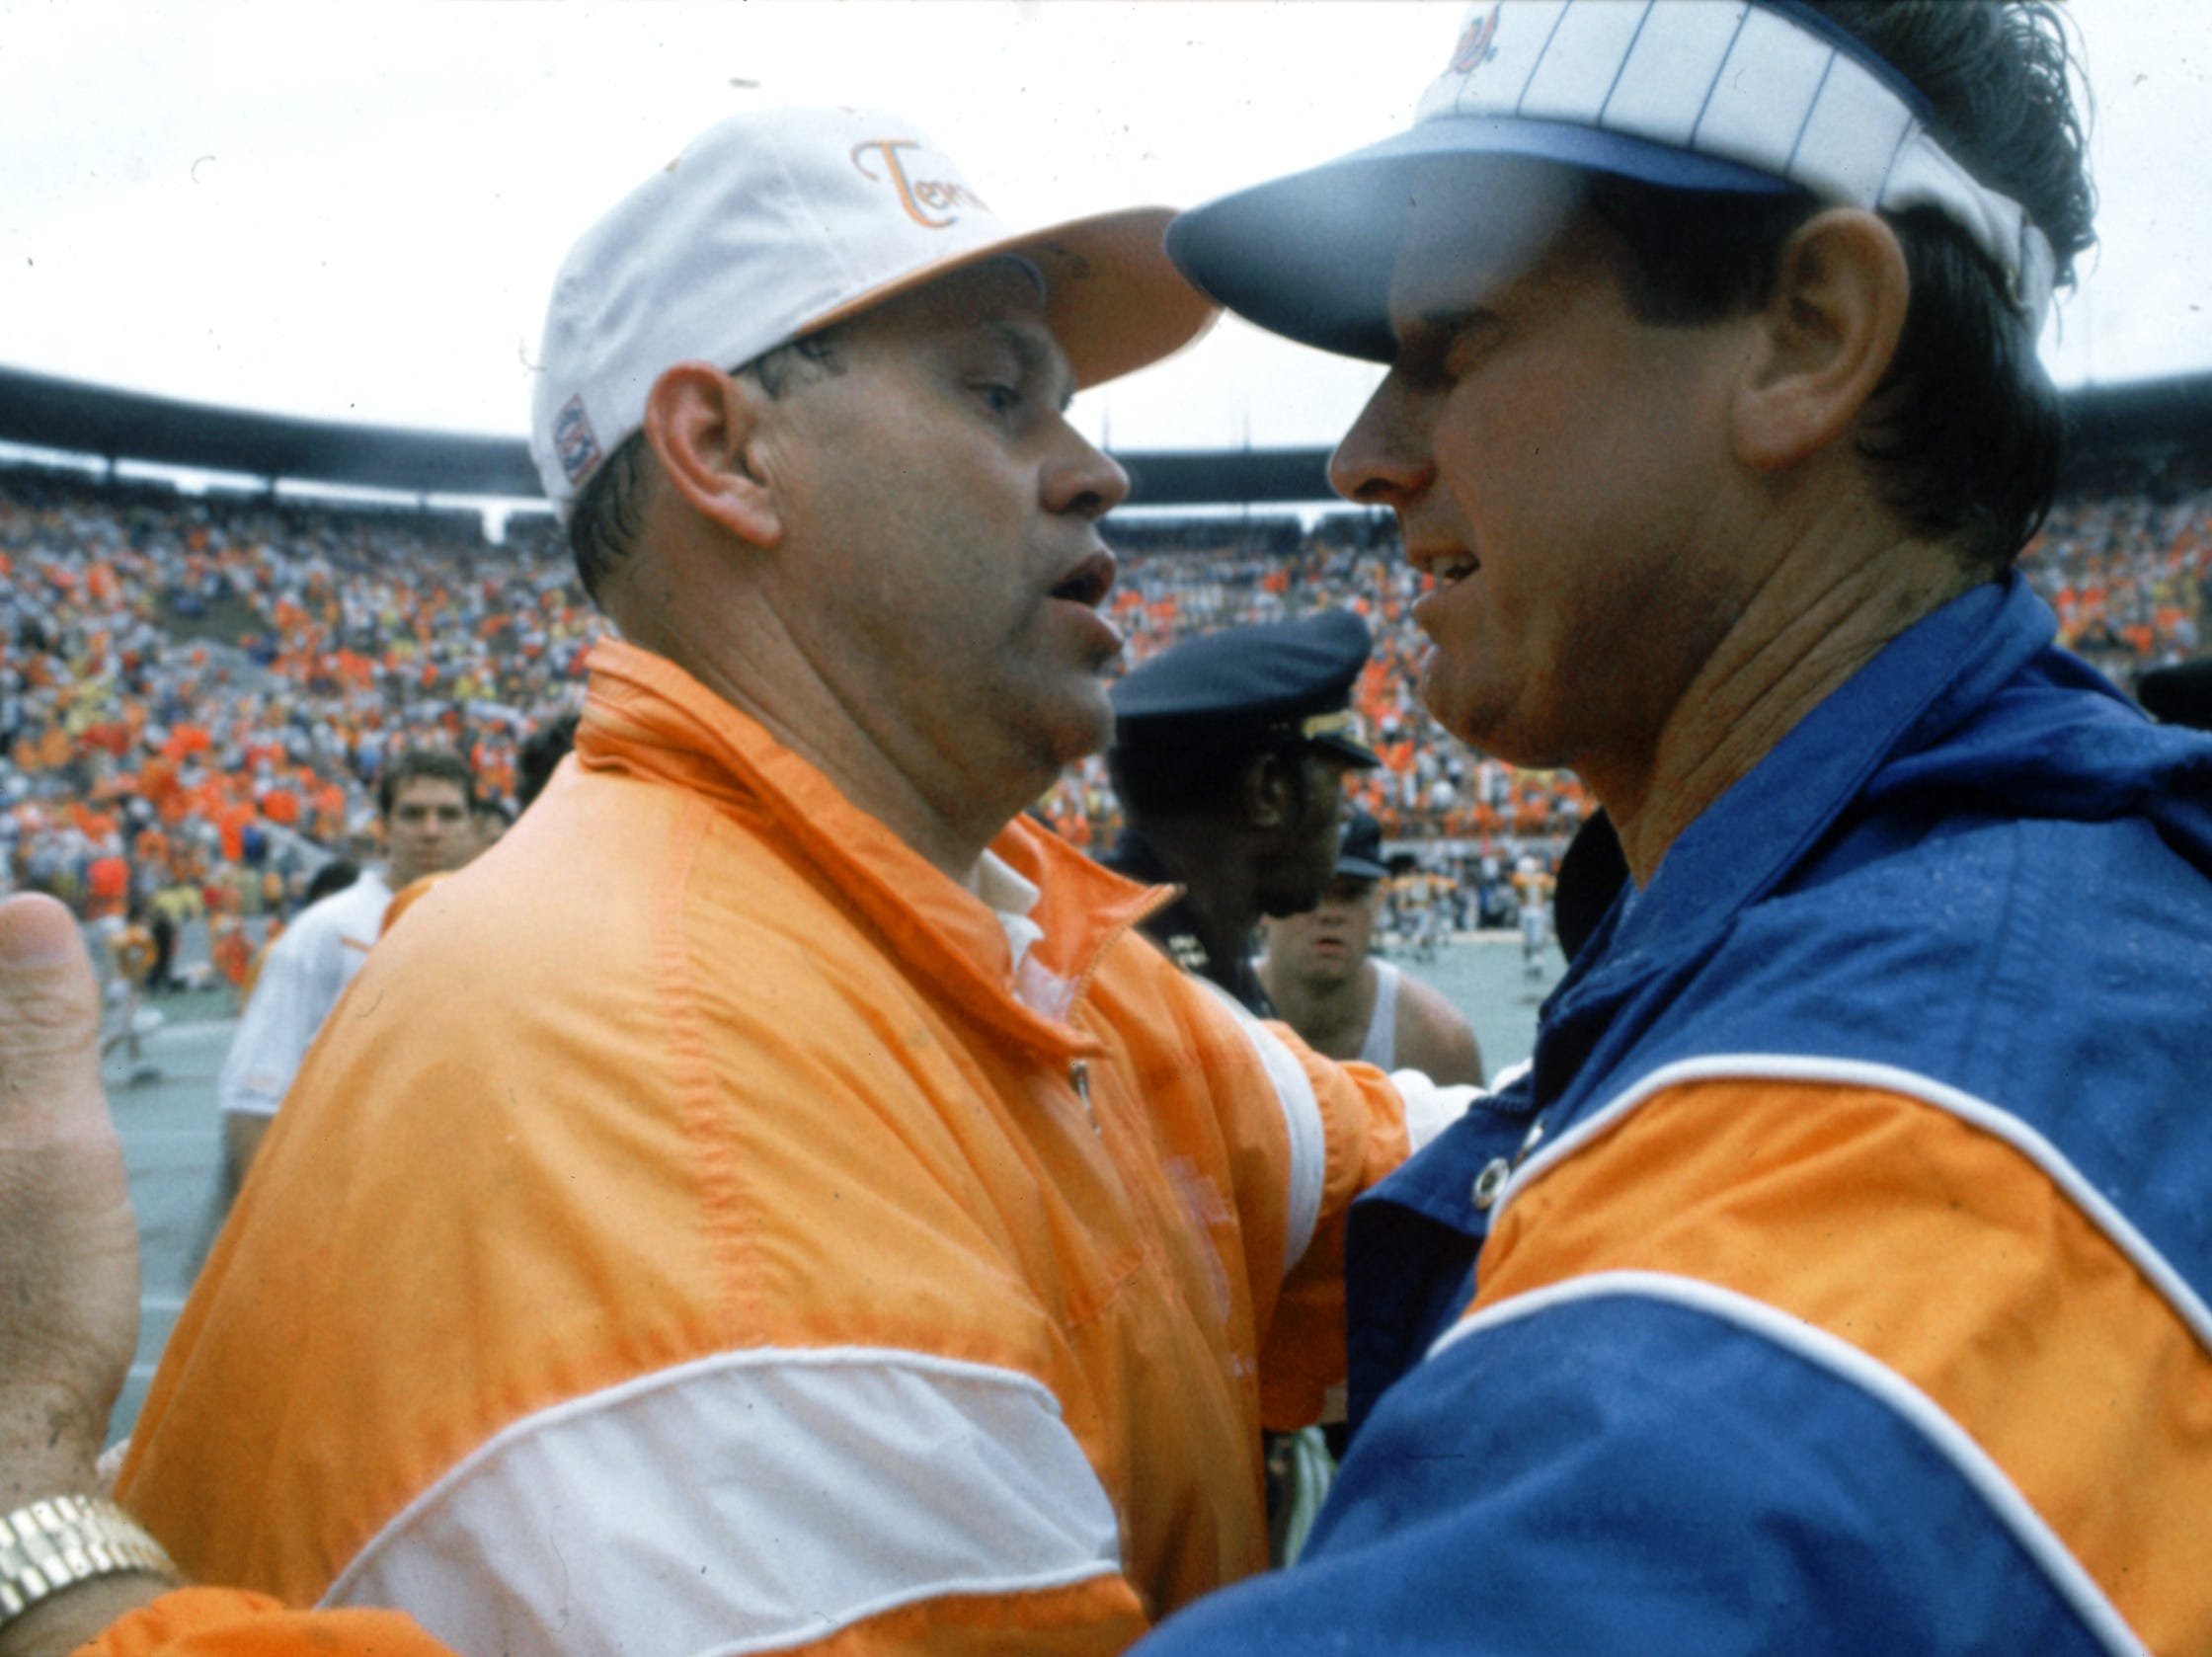 PAUL EFIRD/KNOXVILLE NEWS SENTINEL - December 20, 1992  - University of Tennessee football Coach Phillip Fulmer announced Monday, Nov, 3, 2008, his plans to step down. Here Fulmer shares a pat on the back with then University of Florida Coach Steve Spurrier. Fulmer lost to Spurrier again Saturday 110108 as UT fell to the University of South Carolina 27-6.